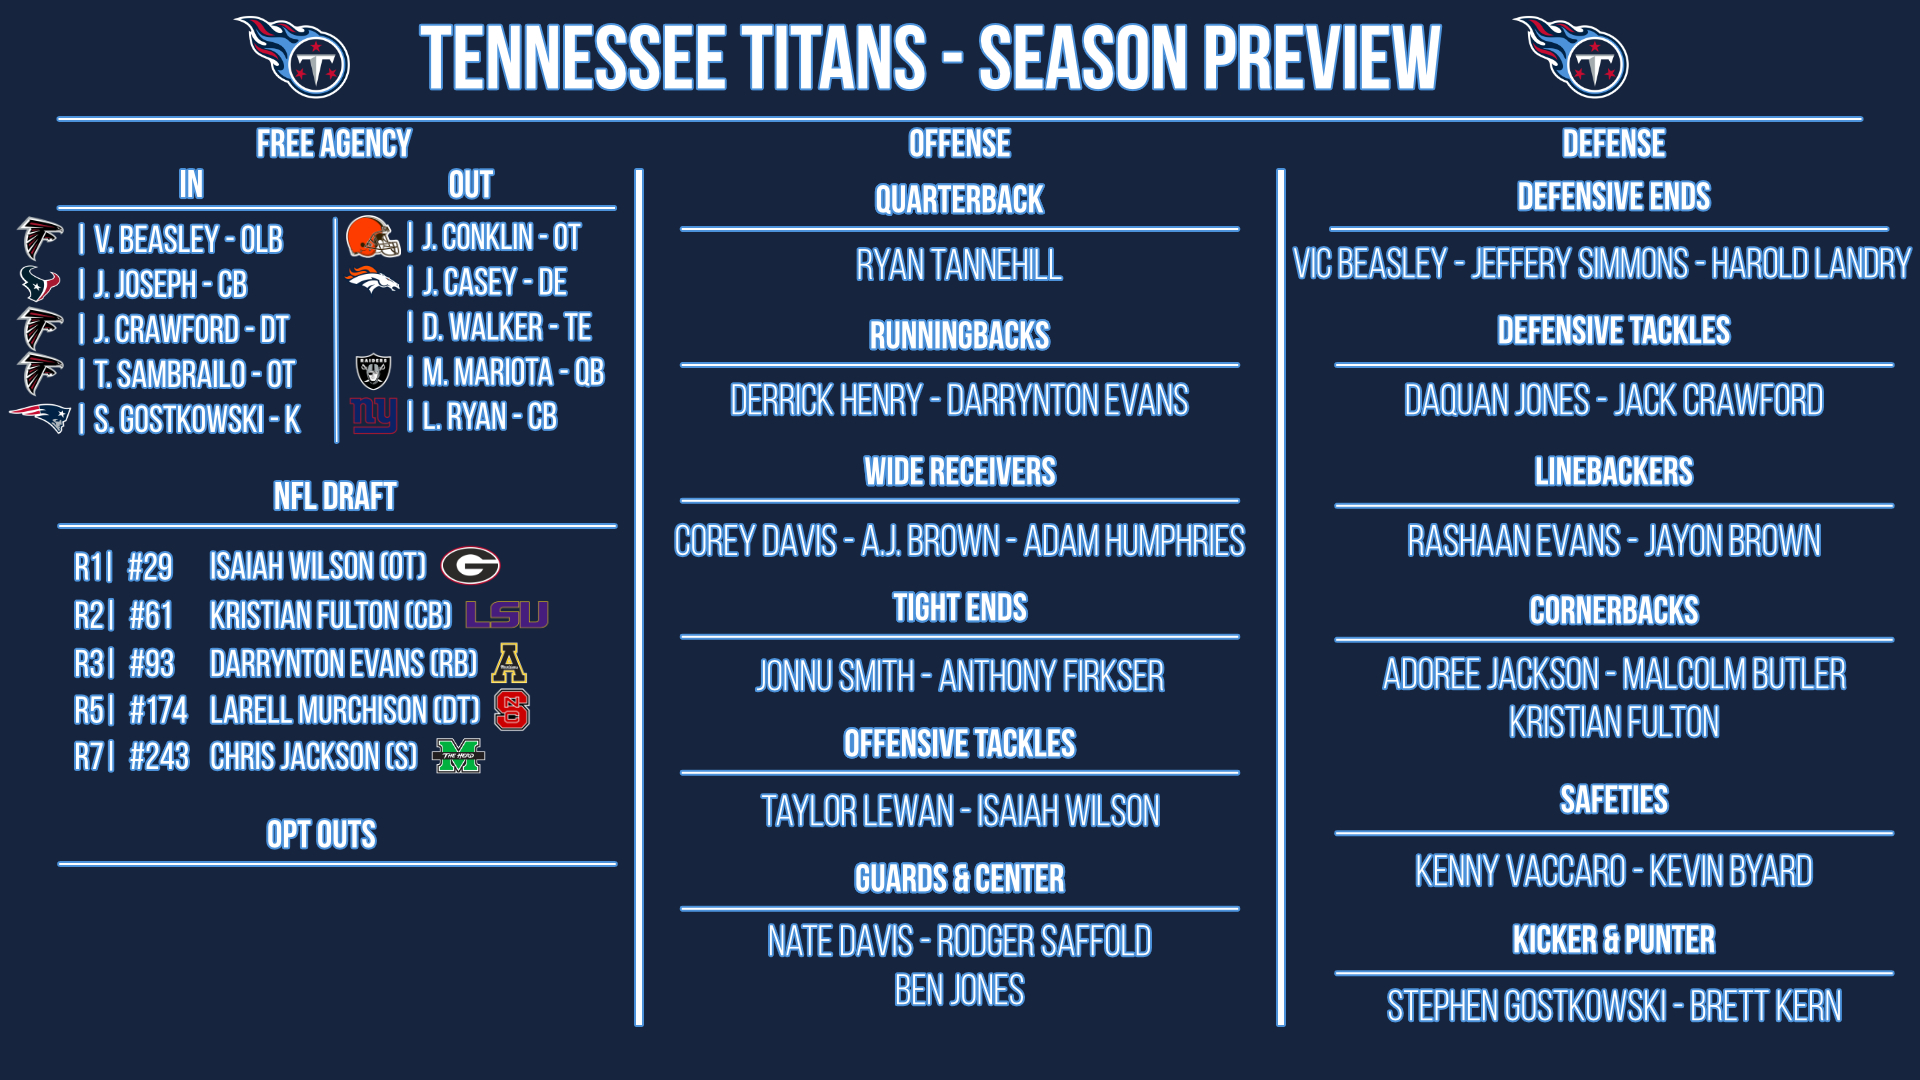 Tennessee Titans preview